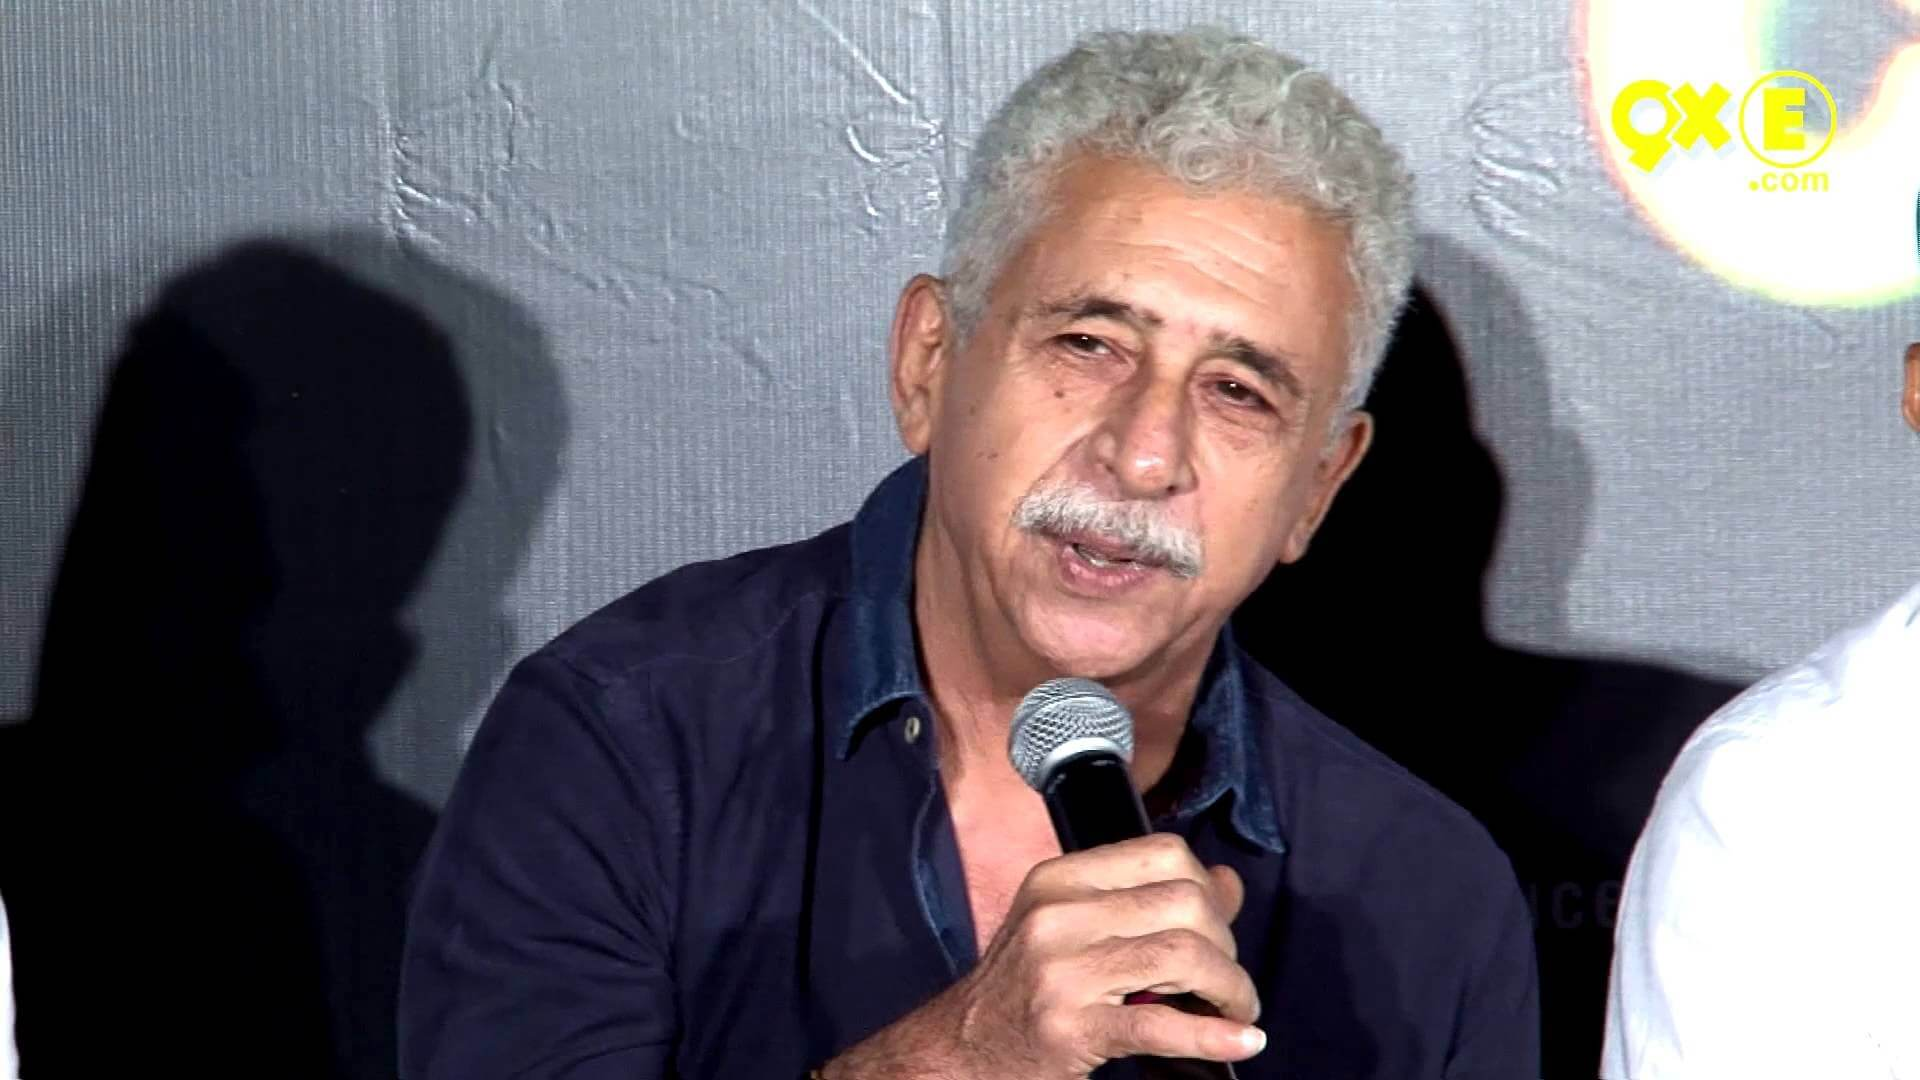 Naseeruddin Shah expresses concern over alleged muzzling of voices of dissent